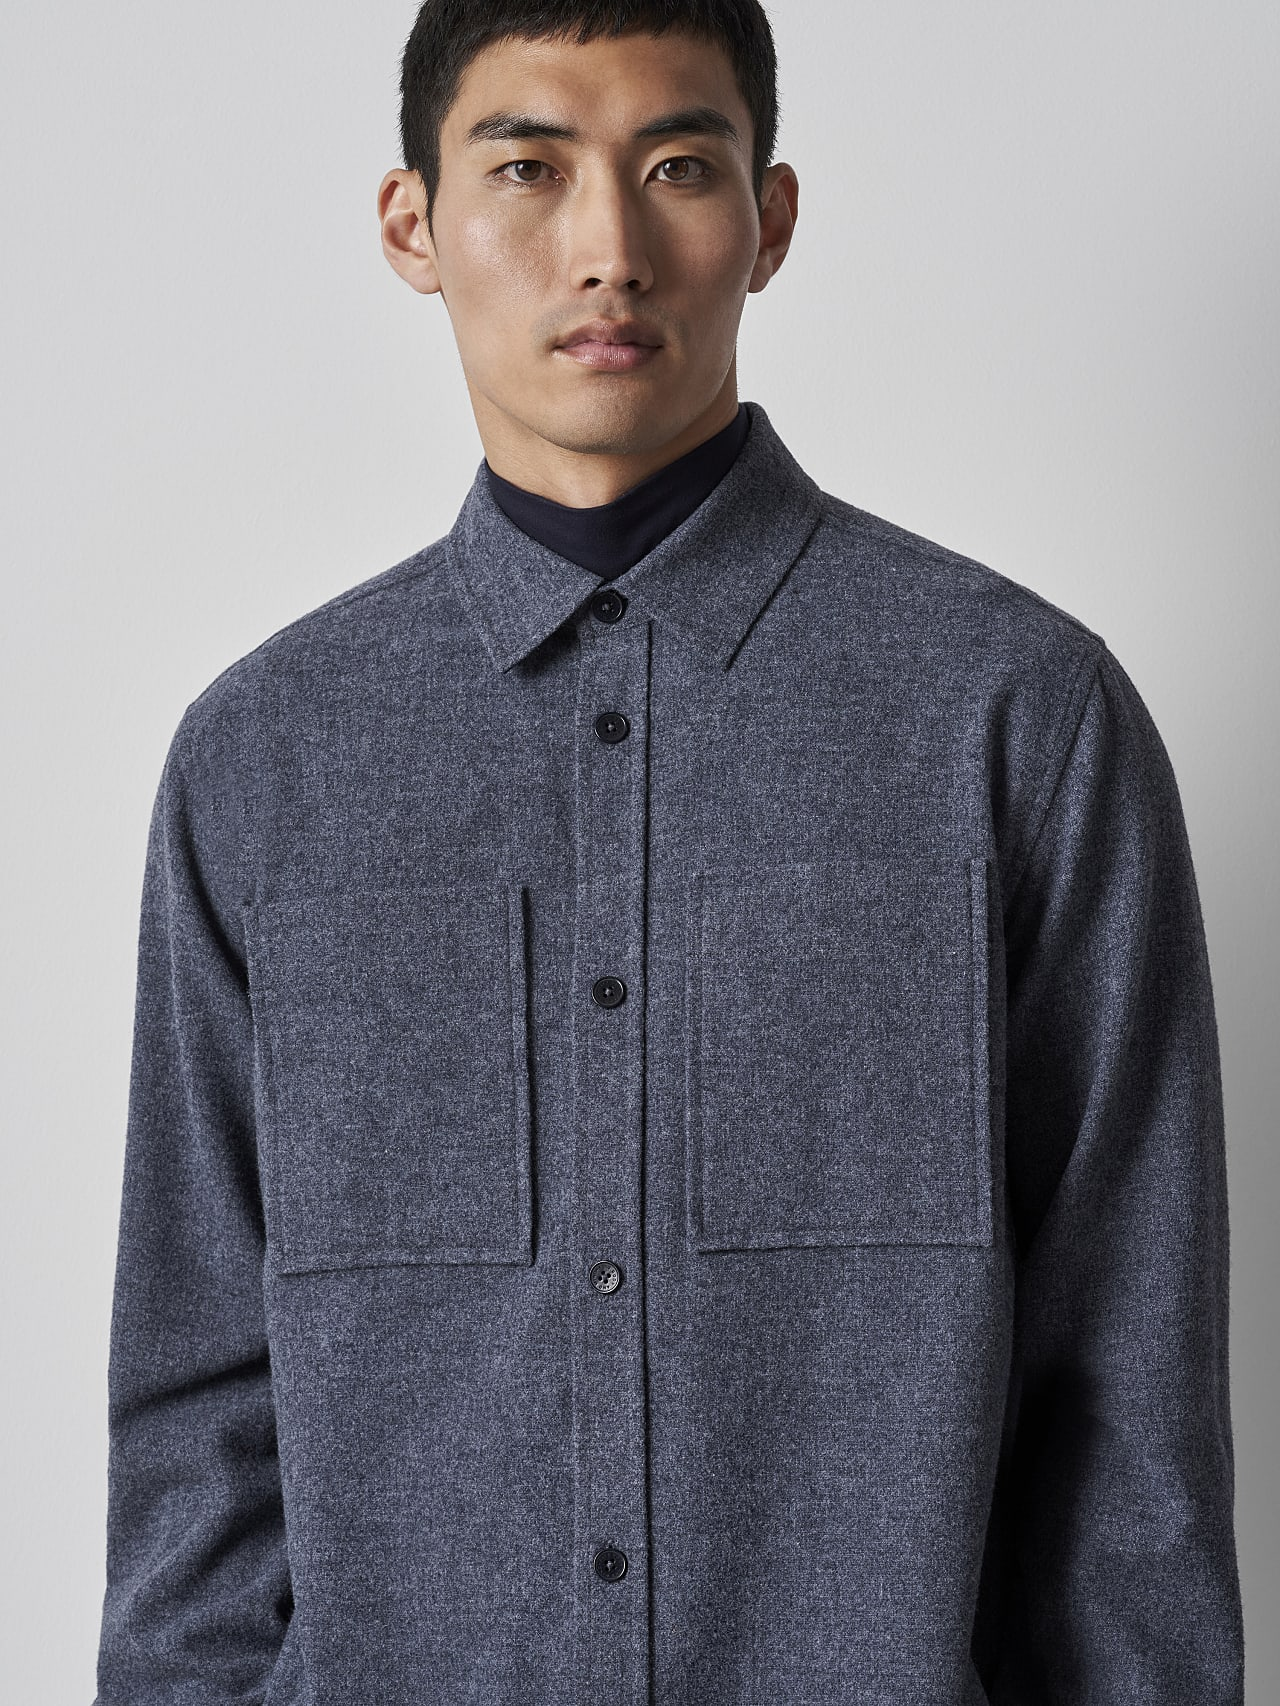 WOVER V1.Y5.02 Wool Over-Shirt navy scene7.view.8.name Alpha Tauri